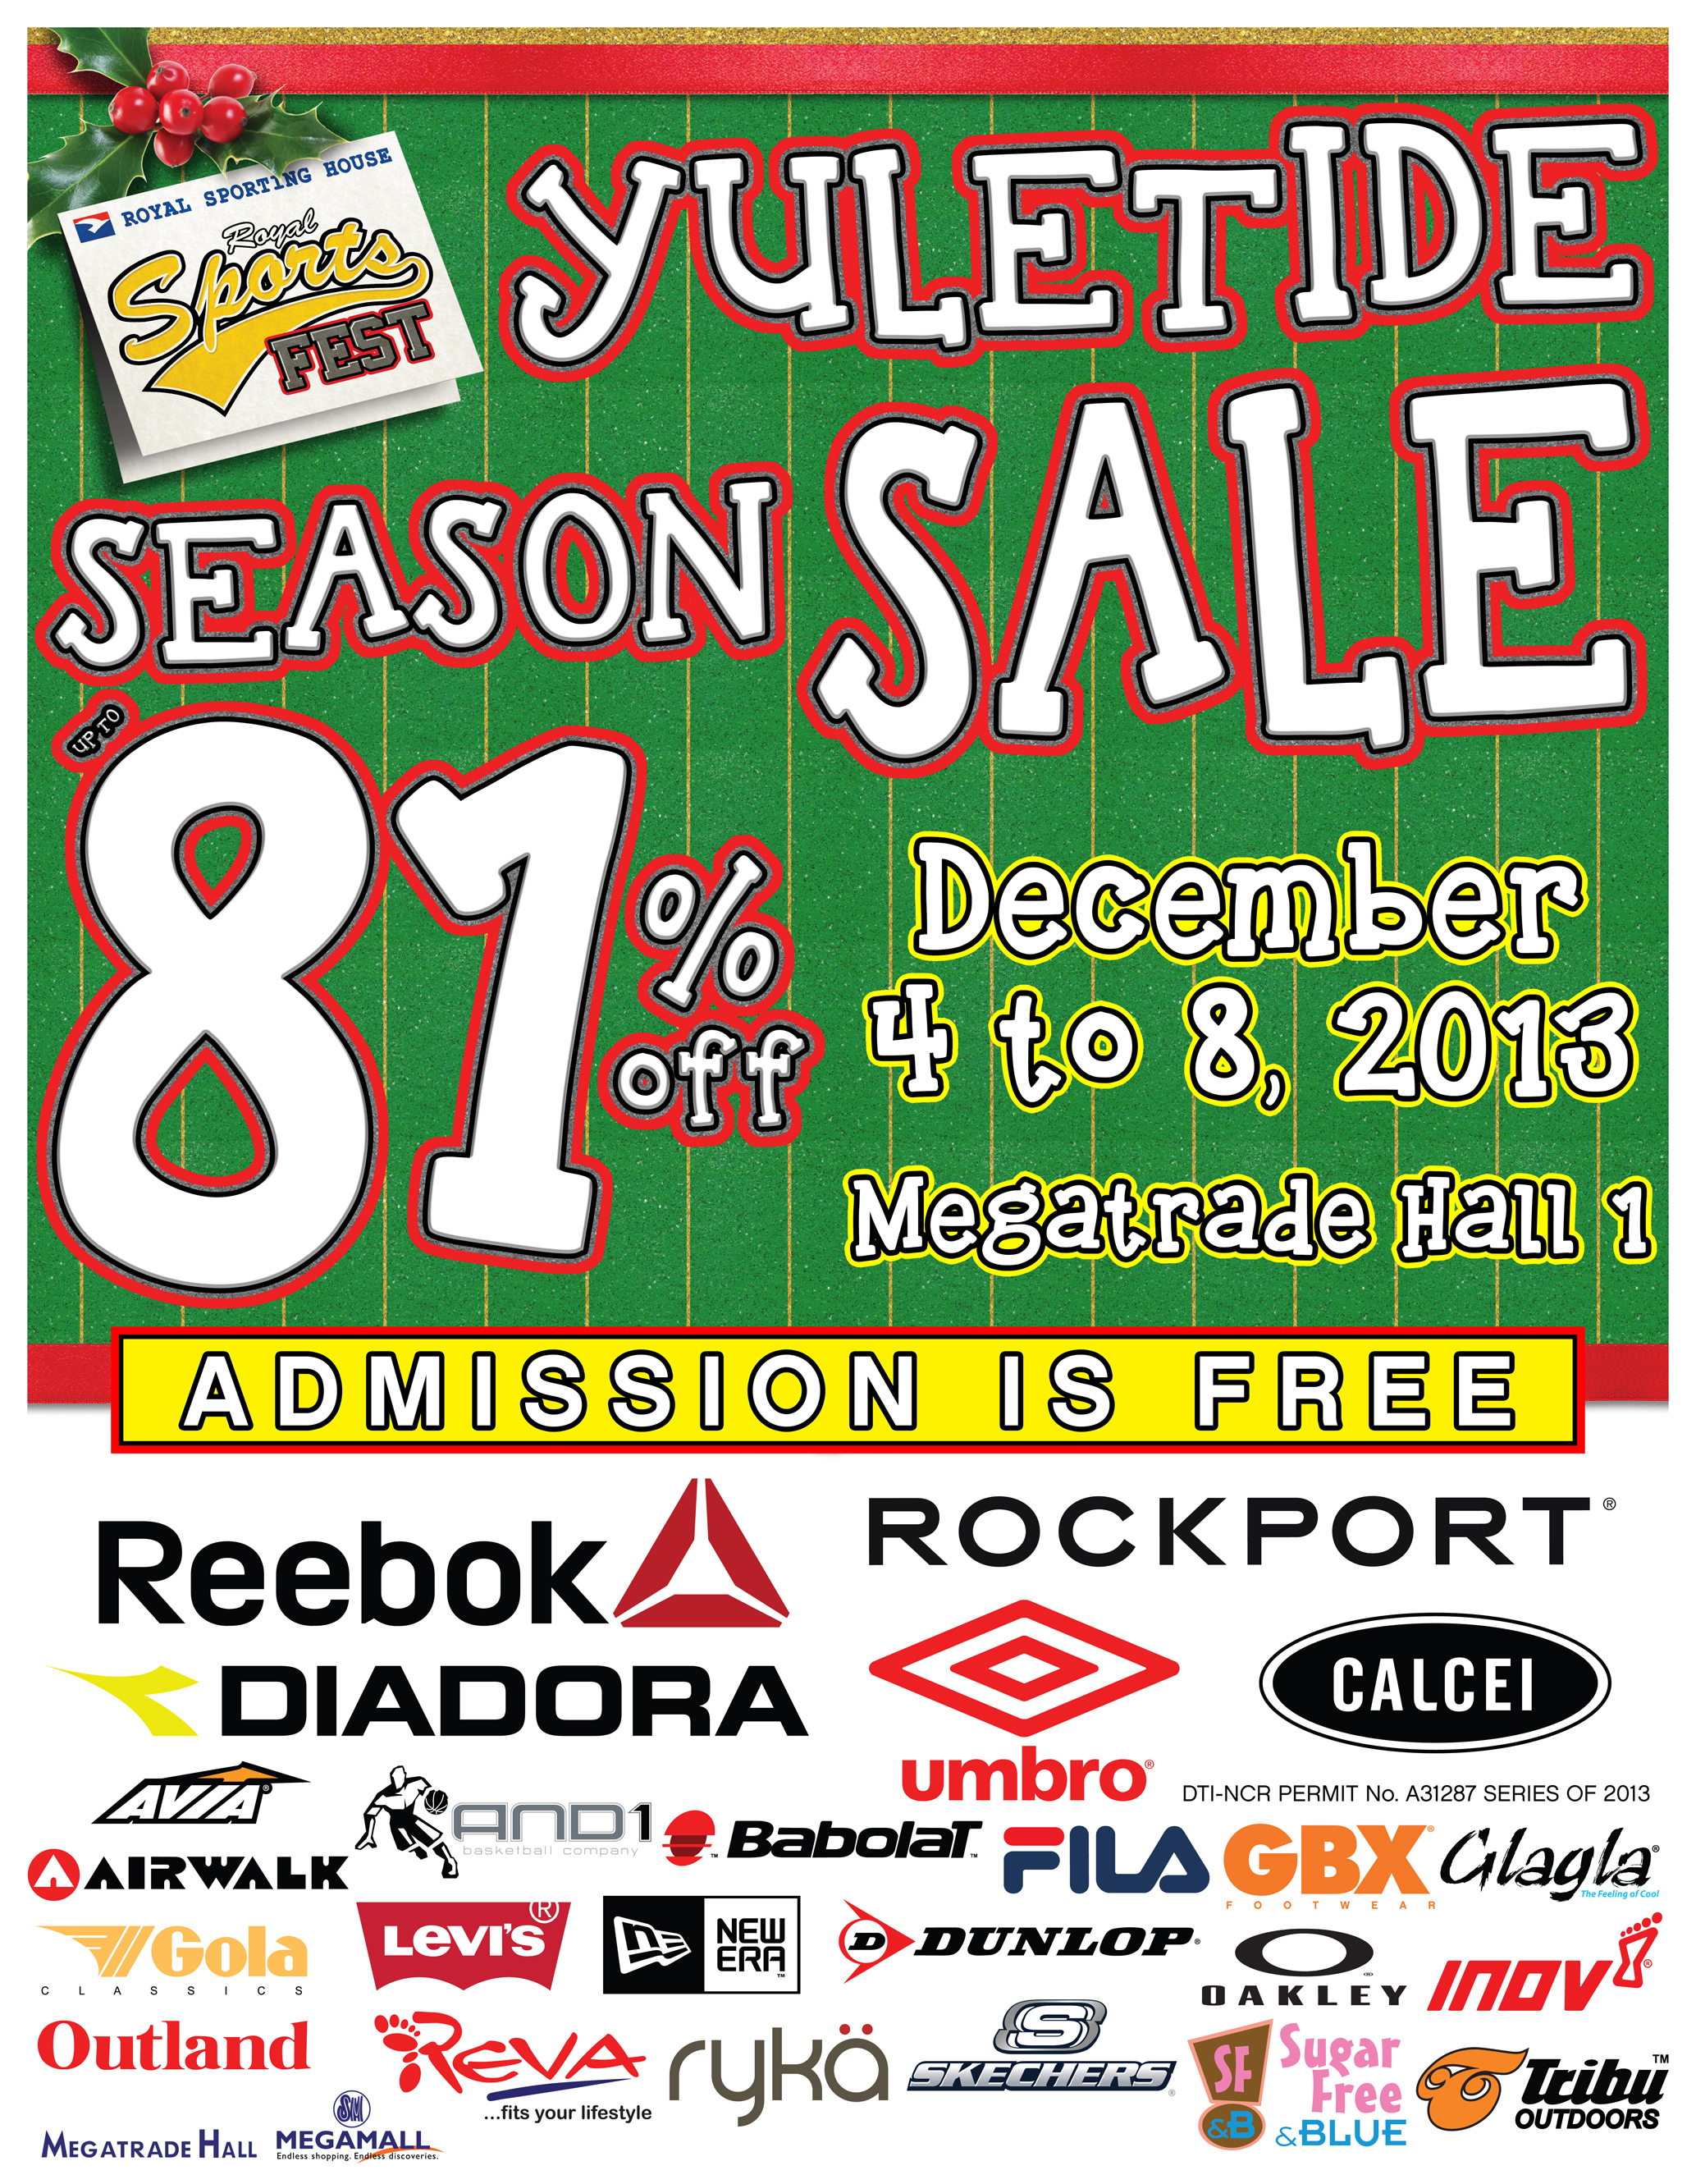 RSF Yuletide Season Sale @ SM Megatrade Hall December 2013